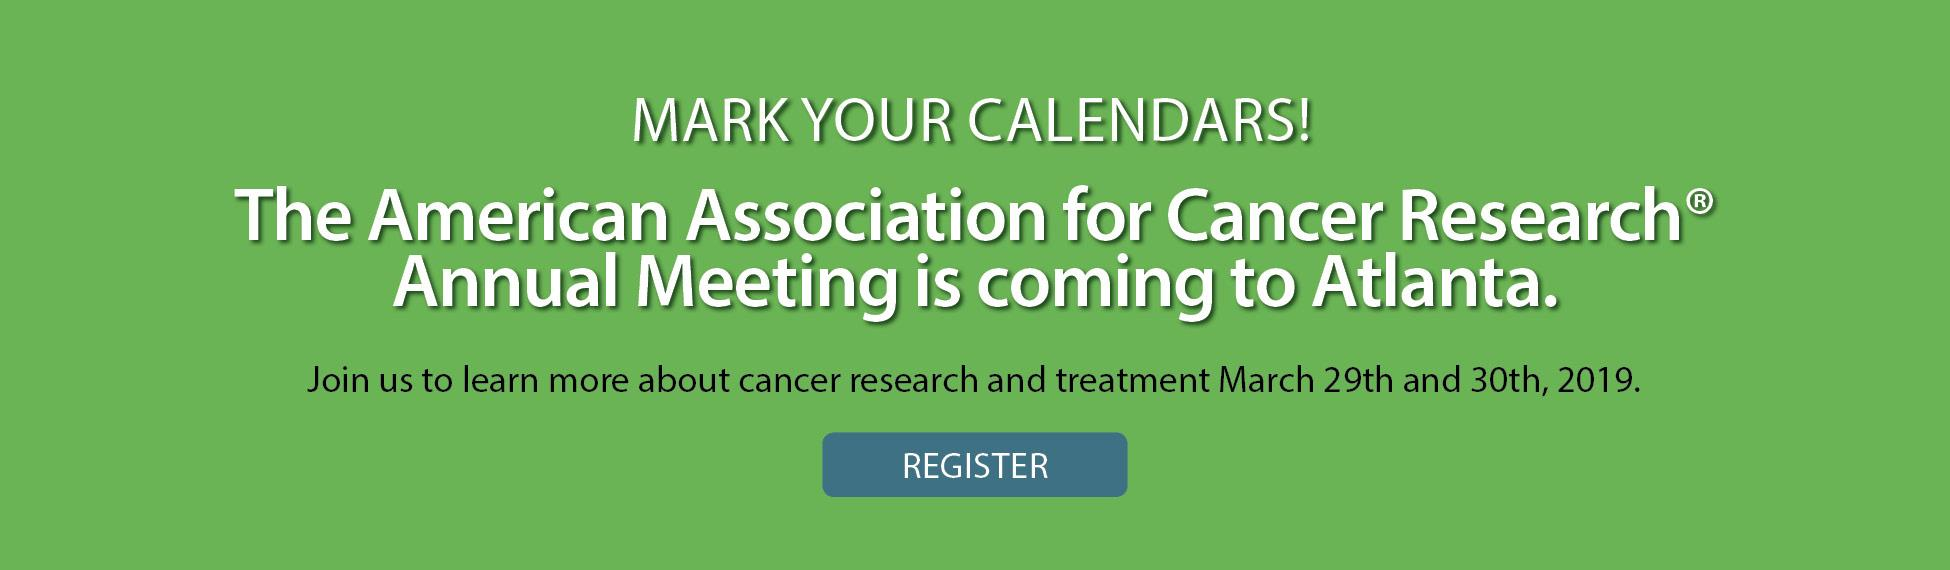 Register for the American Association for Cancer Research® Annual Meeting